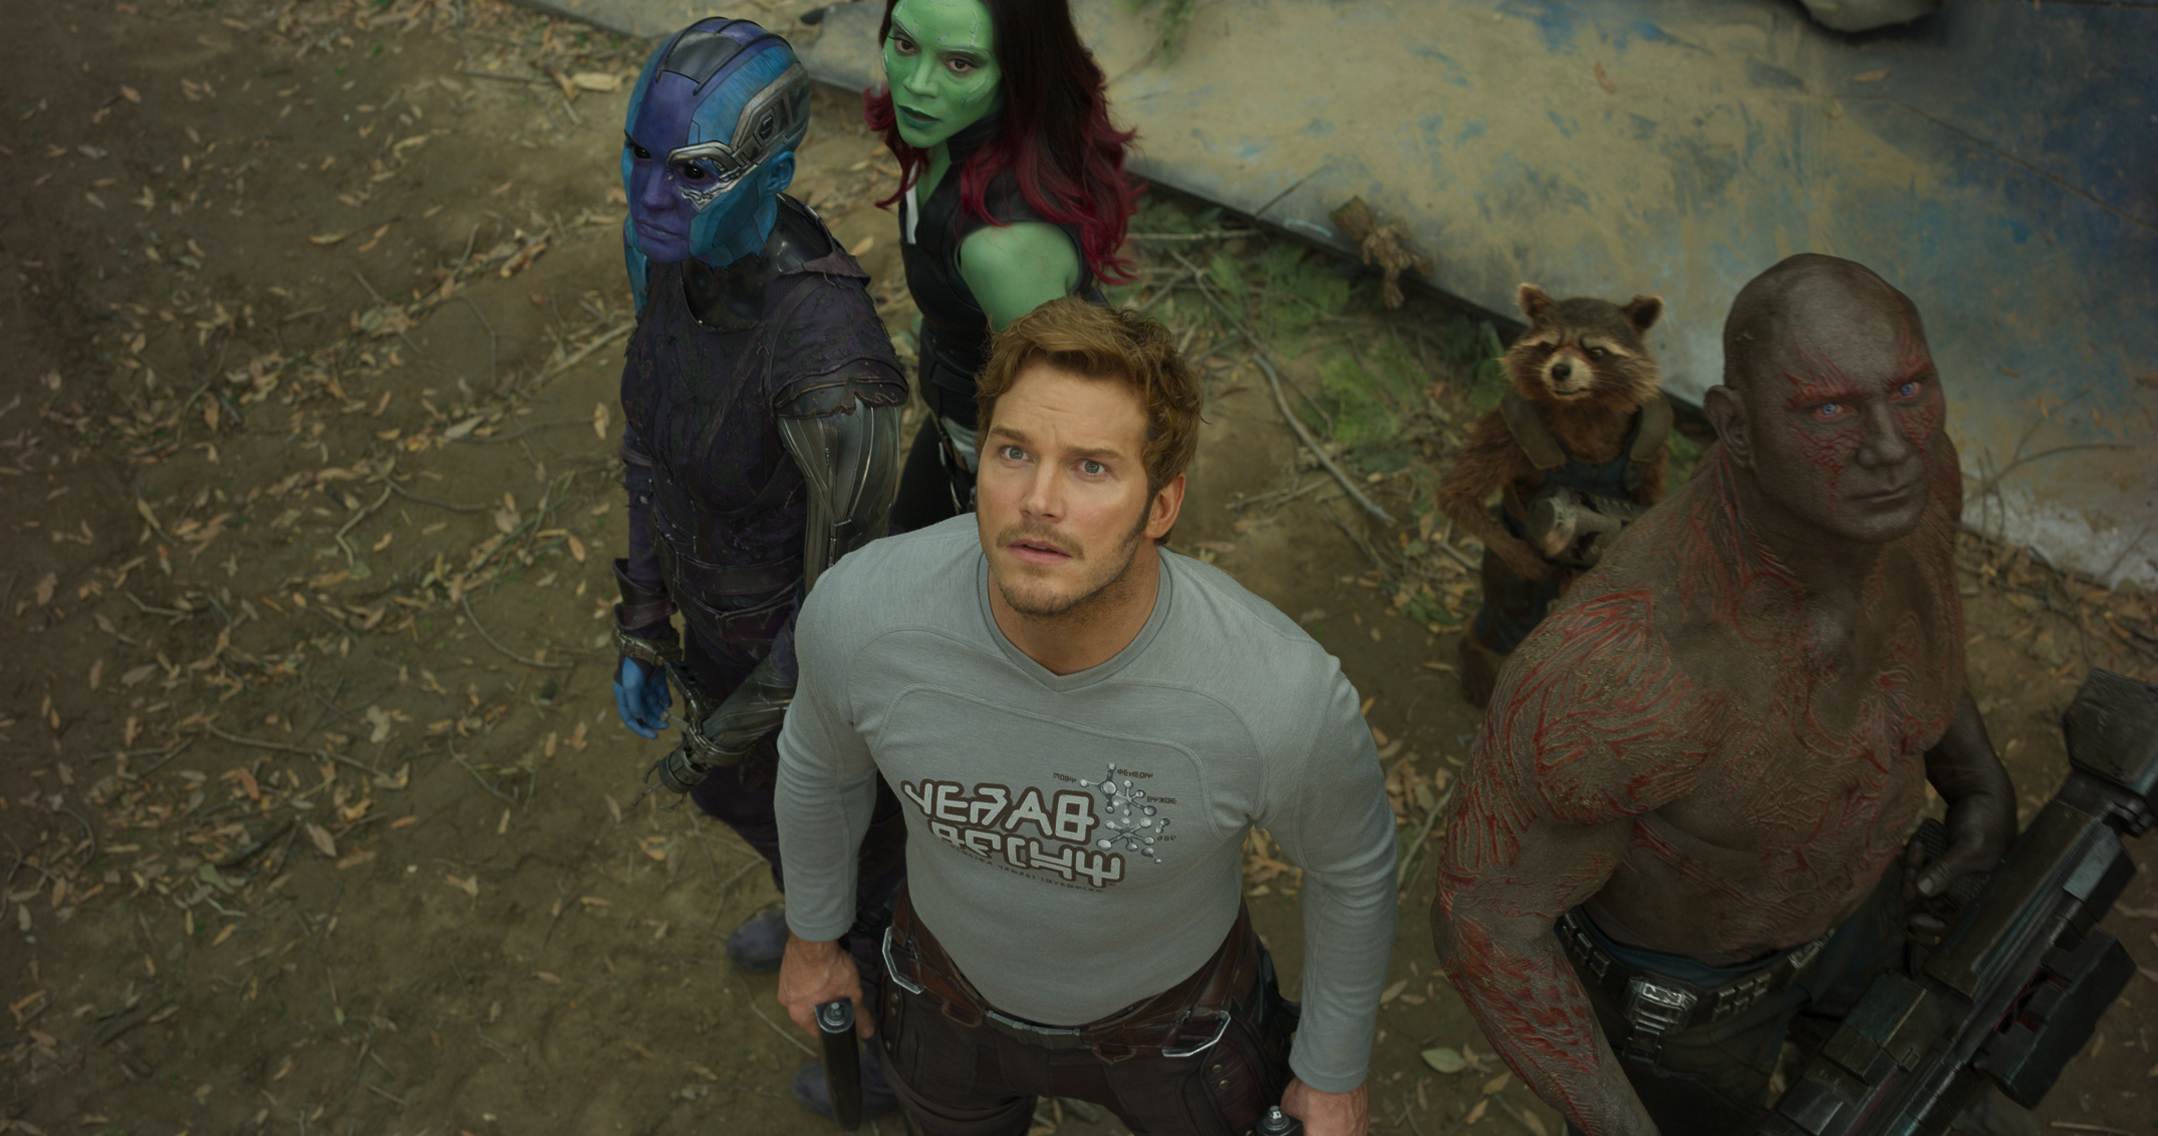 guardians of the galaxy vol 2 review just your